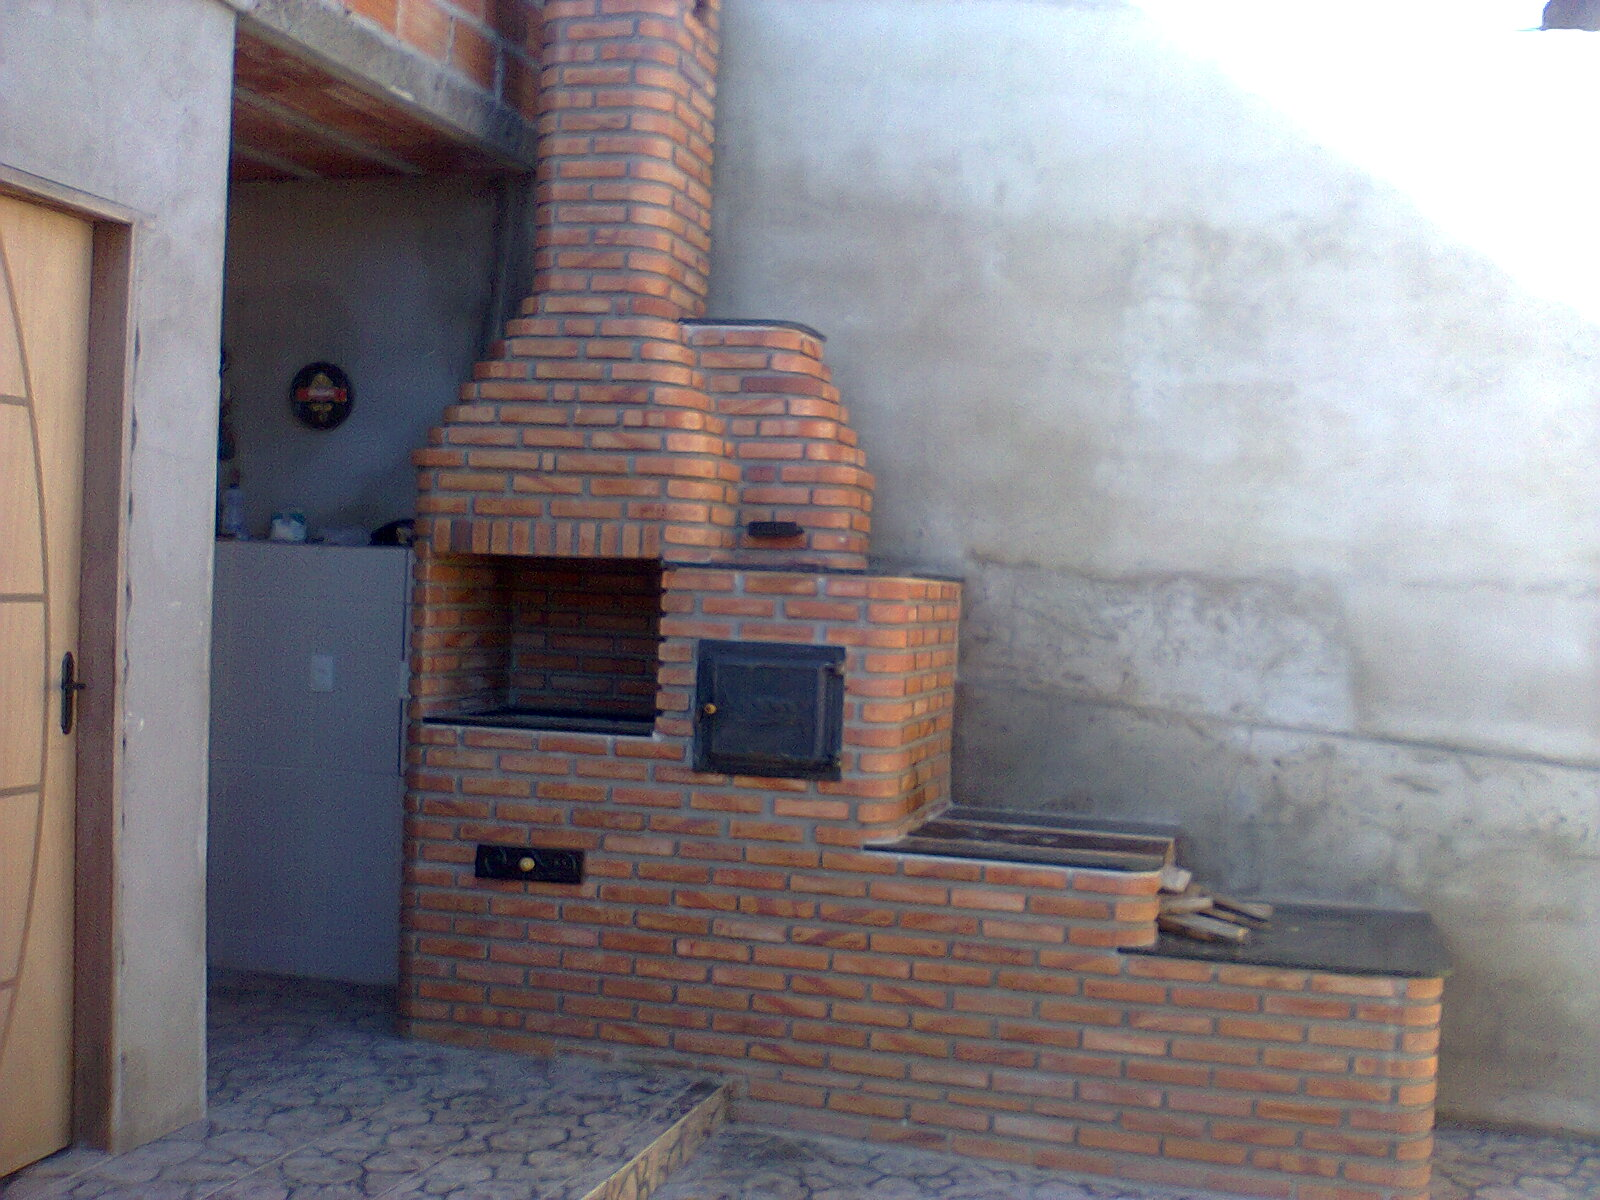 Churrasqueira Com Forno A Lenha 8 Pictures to pin on Pinterest #855C46 1600 1200